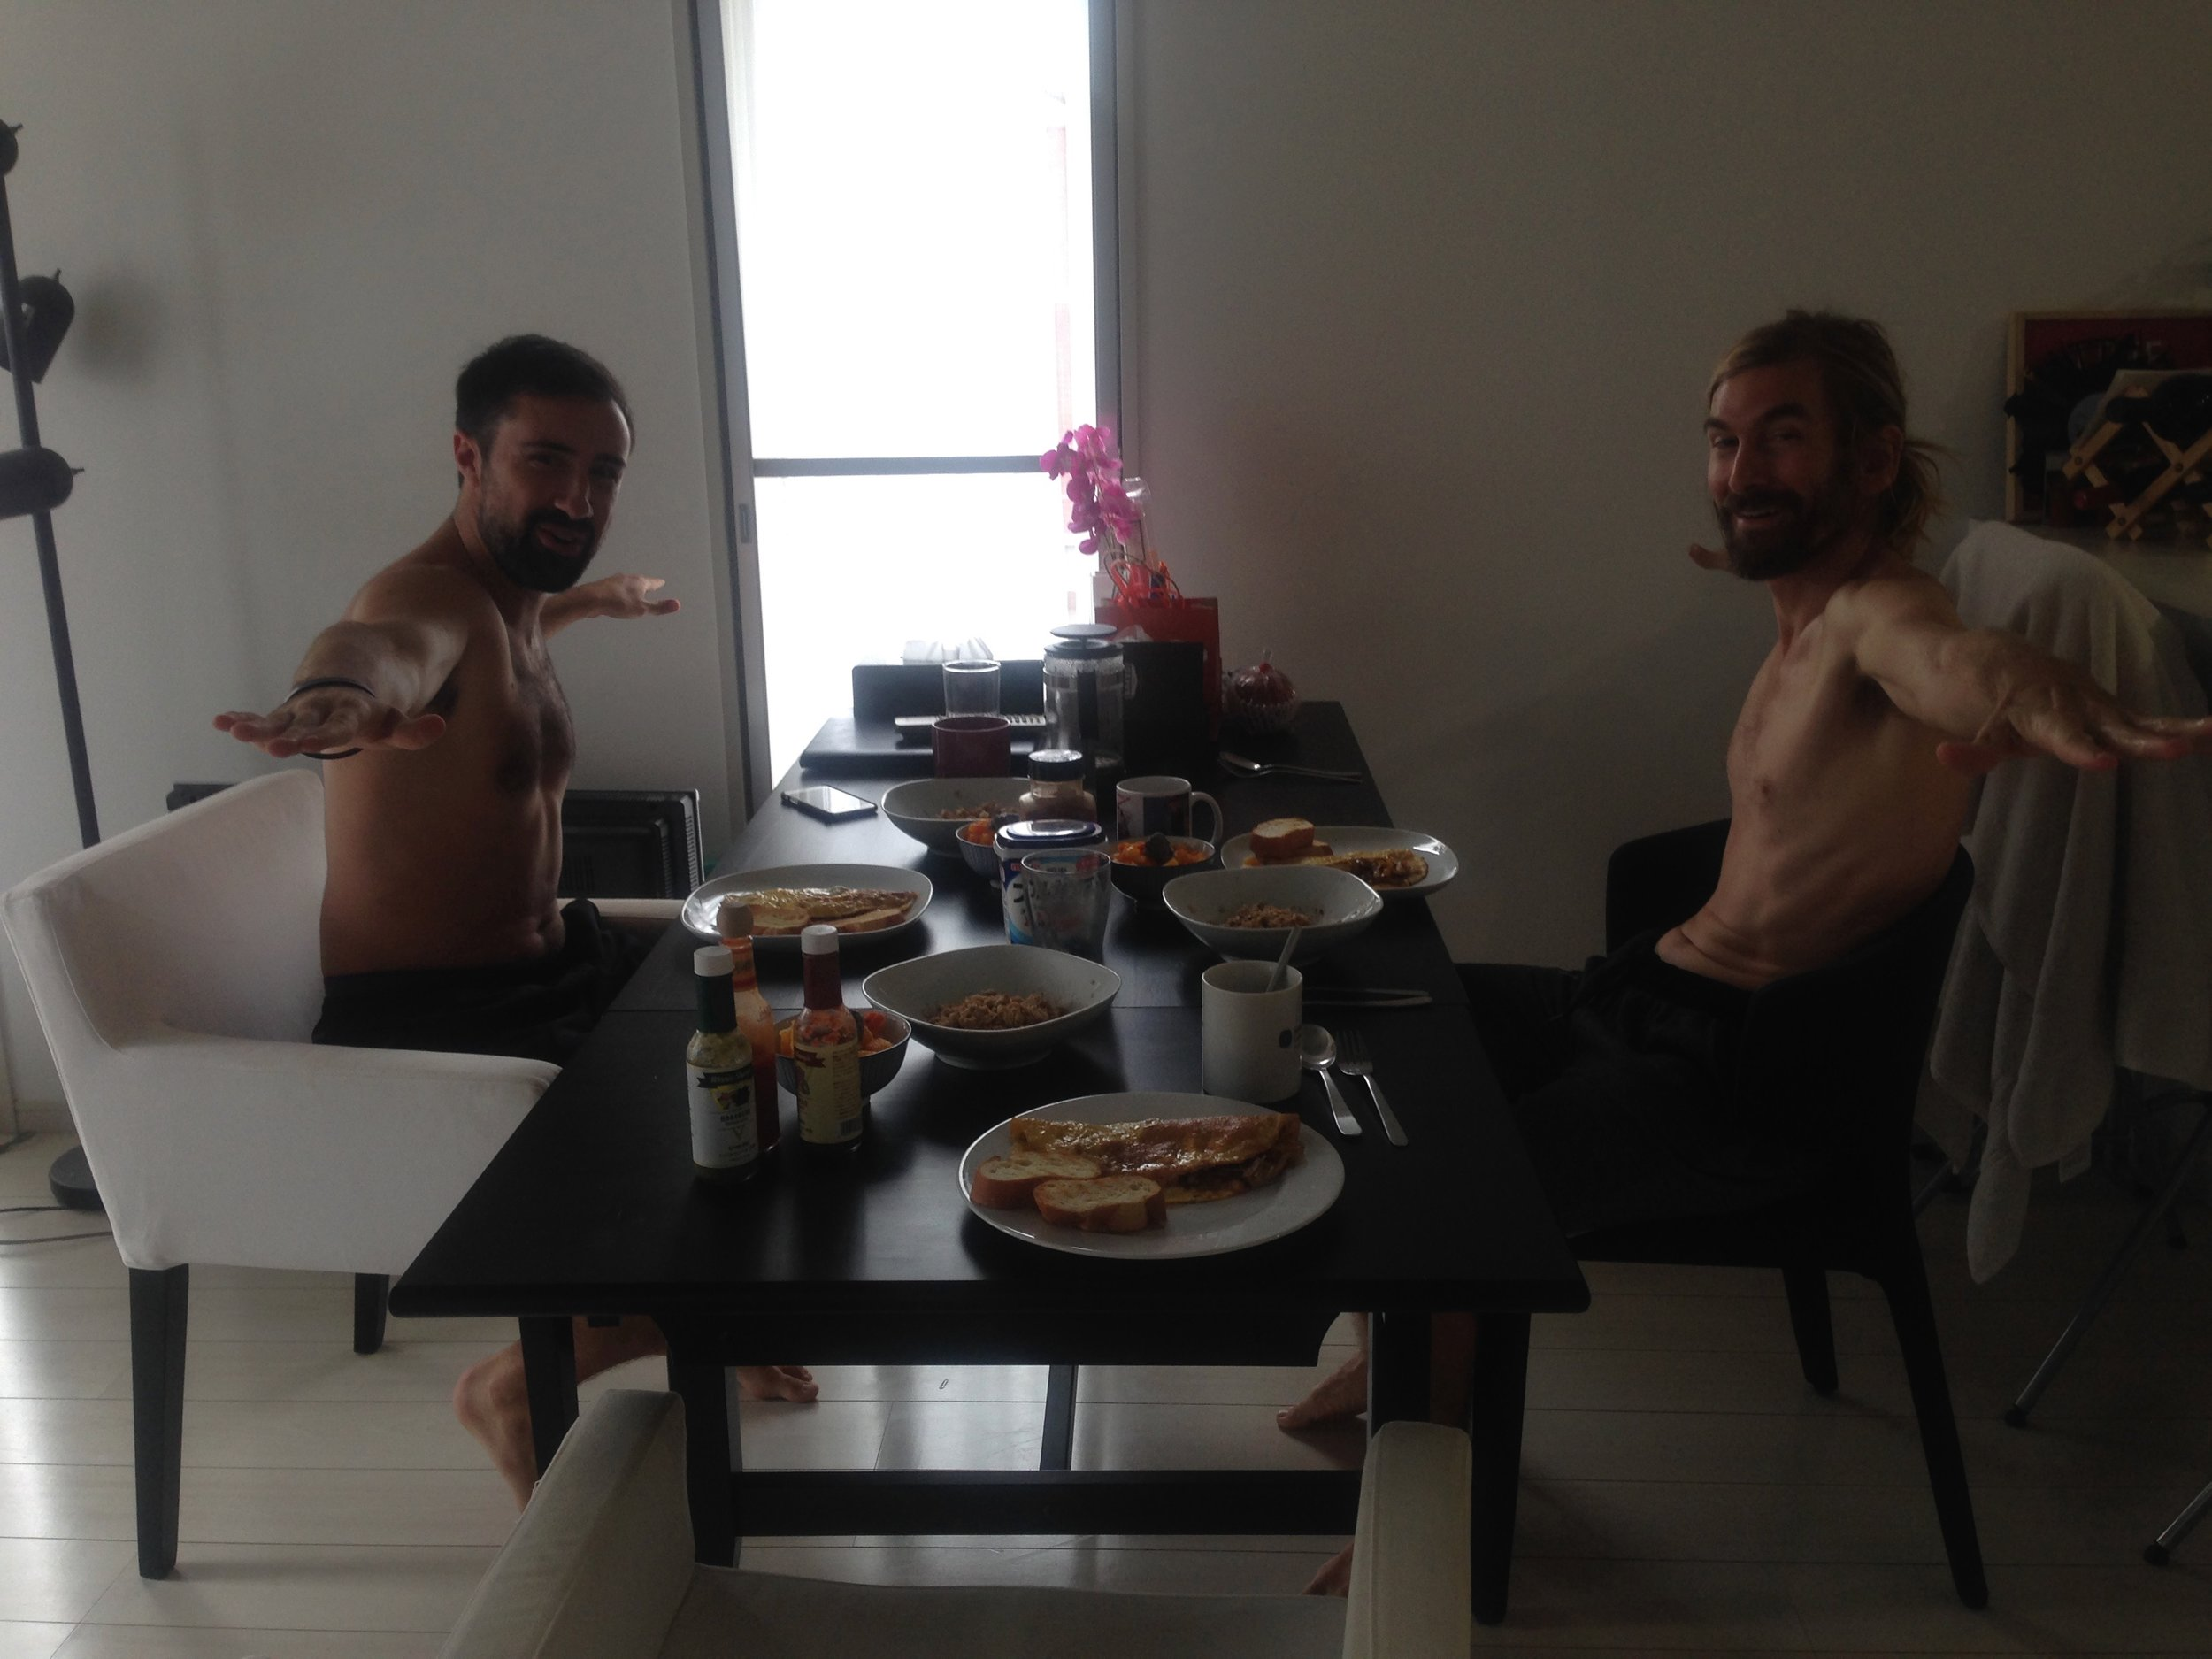 Two warriors at breakfast